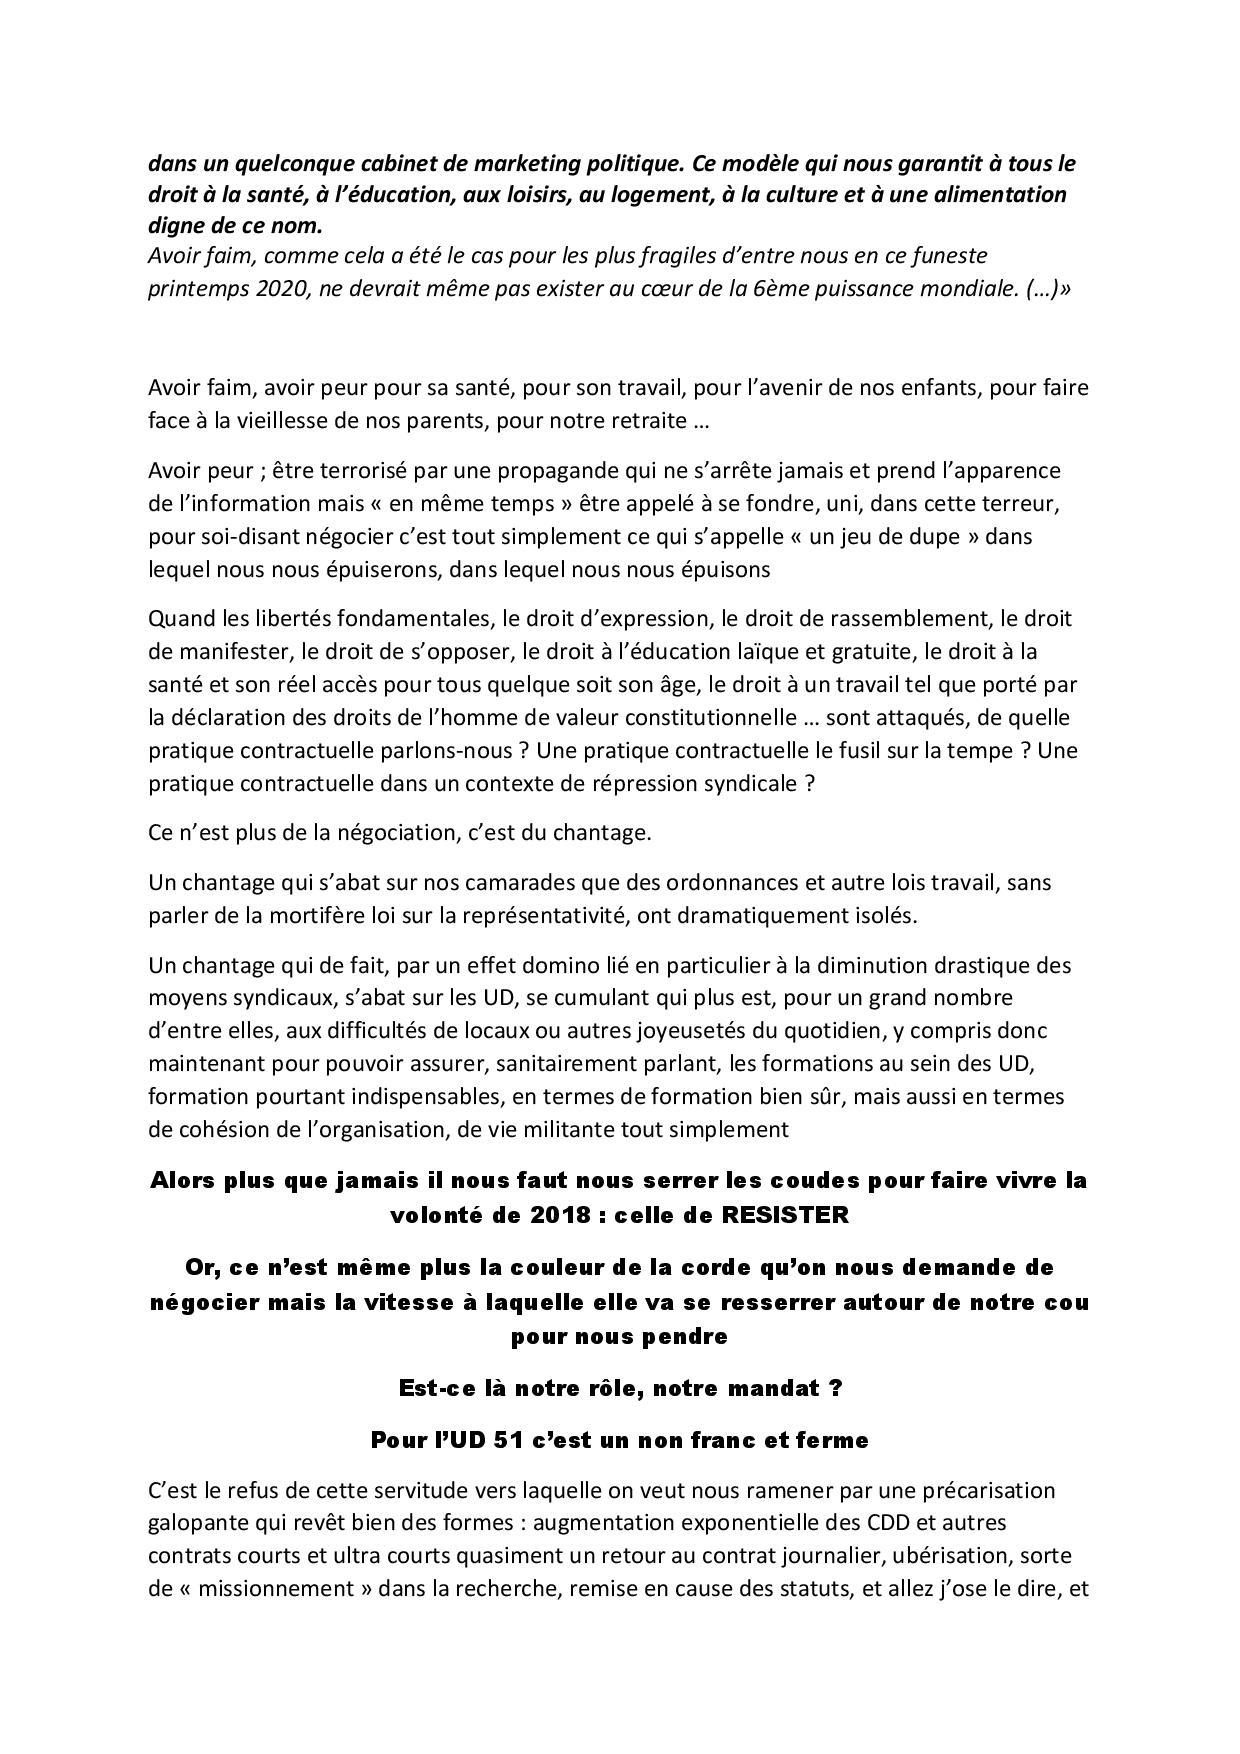 Intervention ud cgt fo marne ccn 23 et 24 09 20 page 002